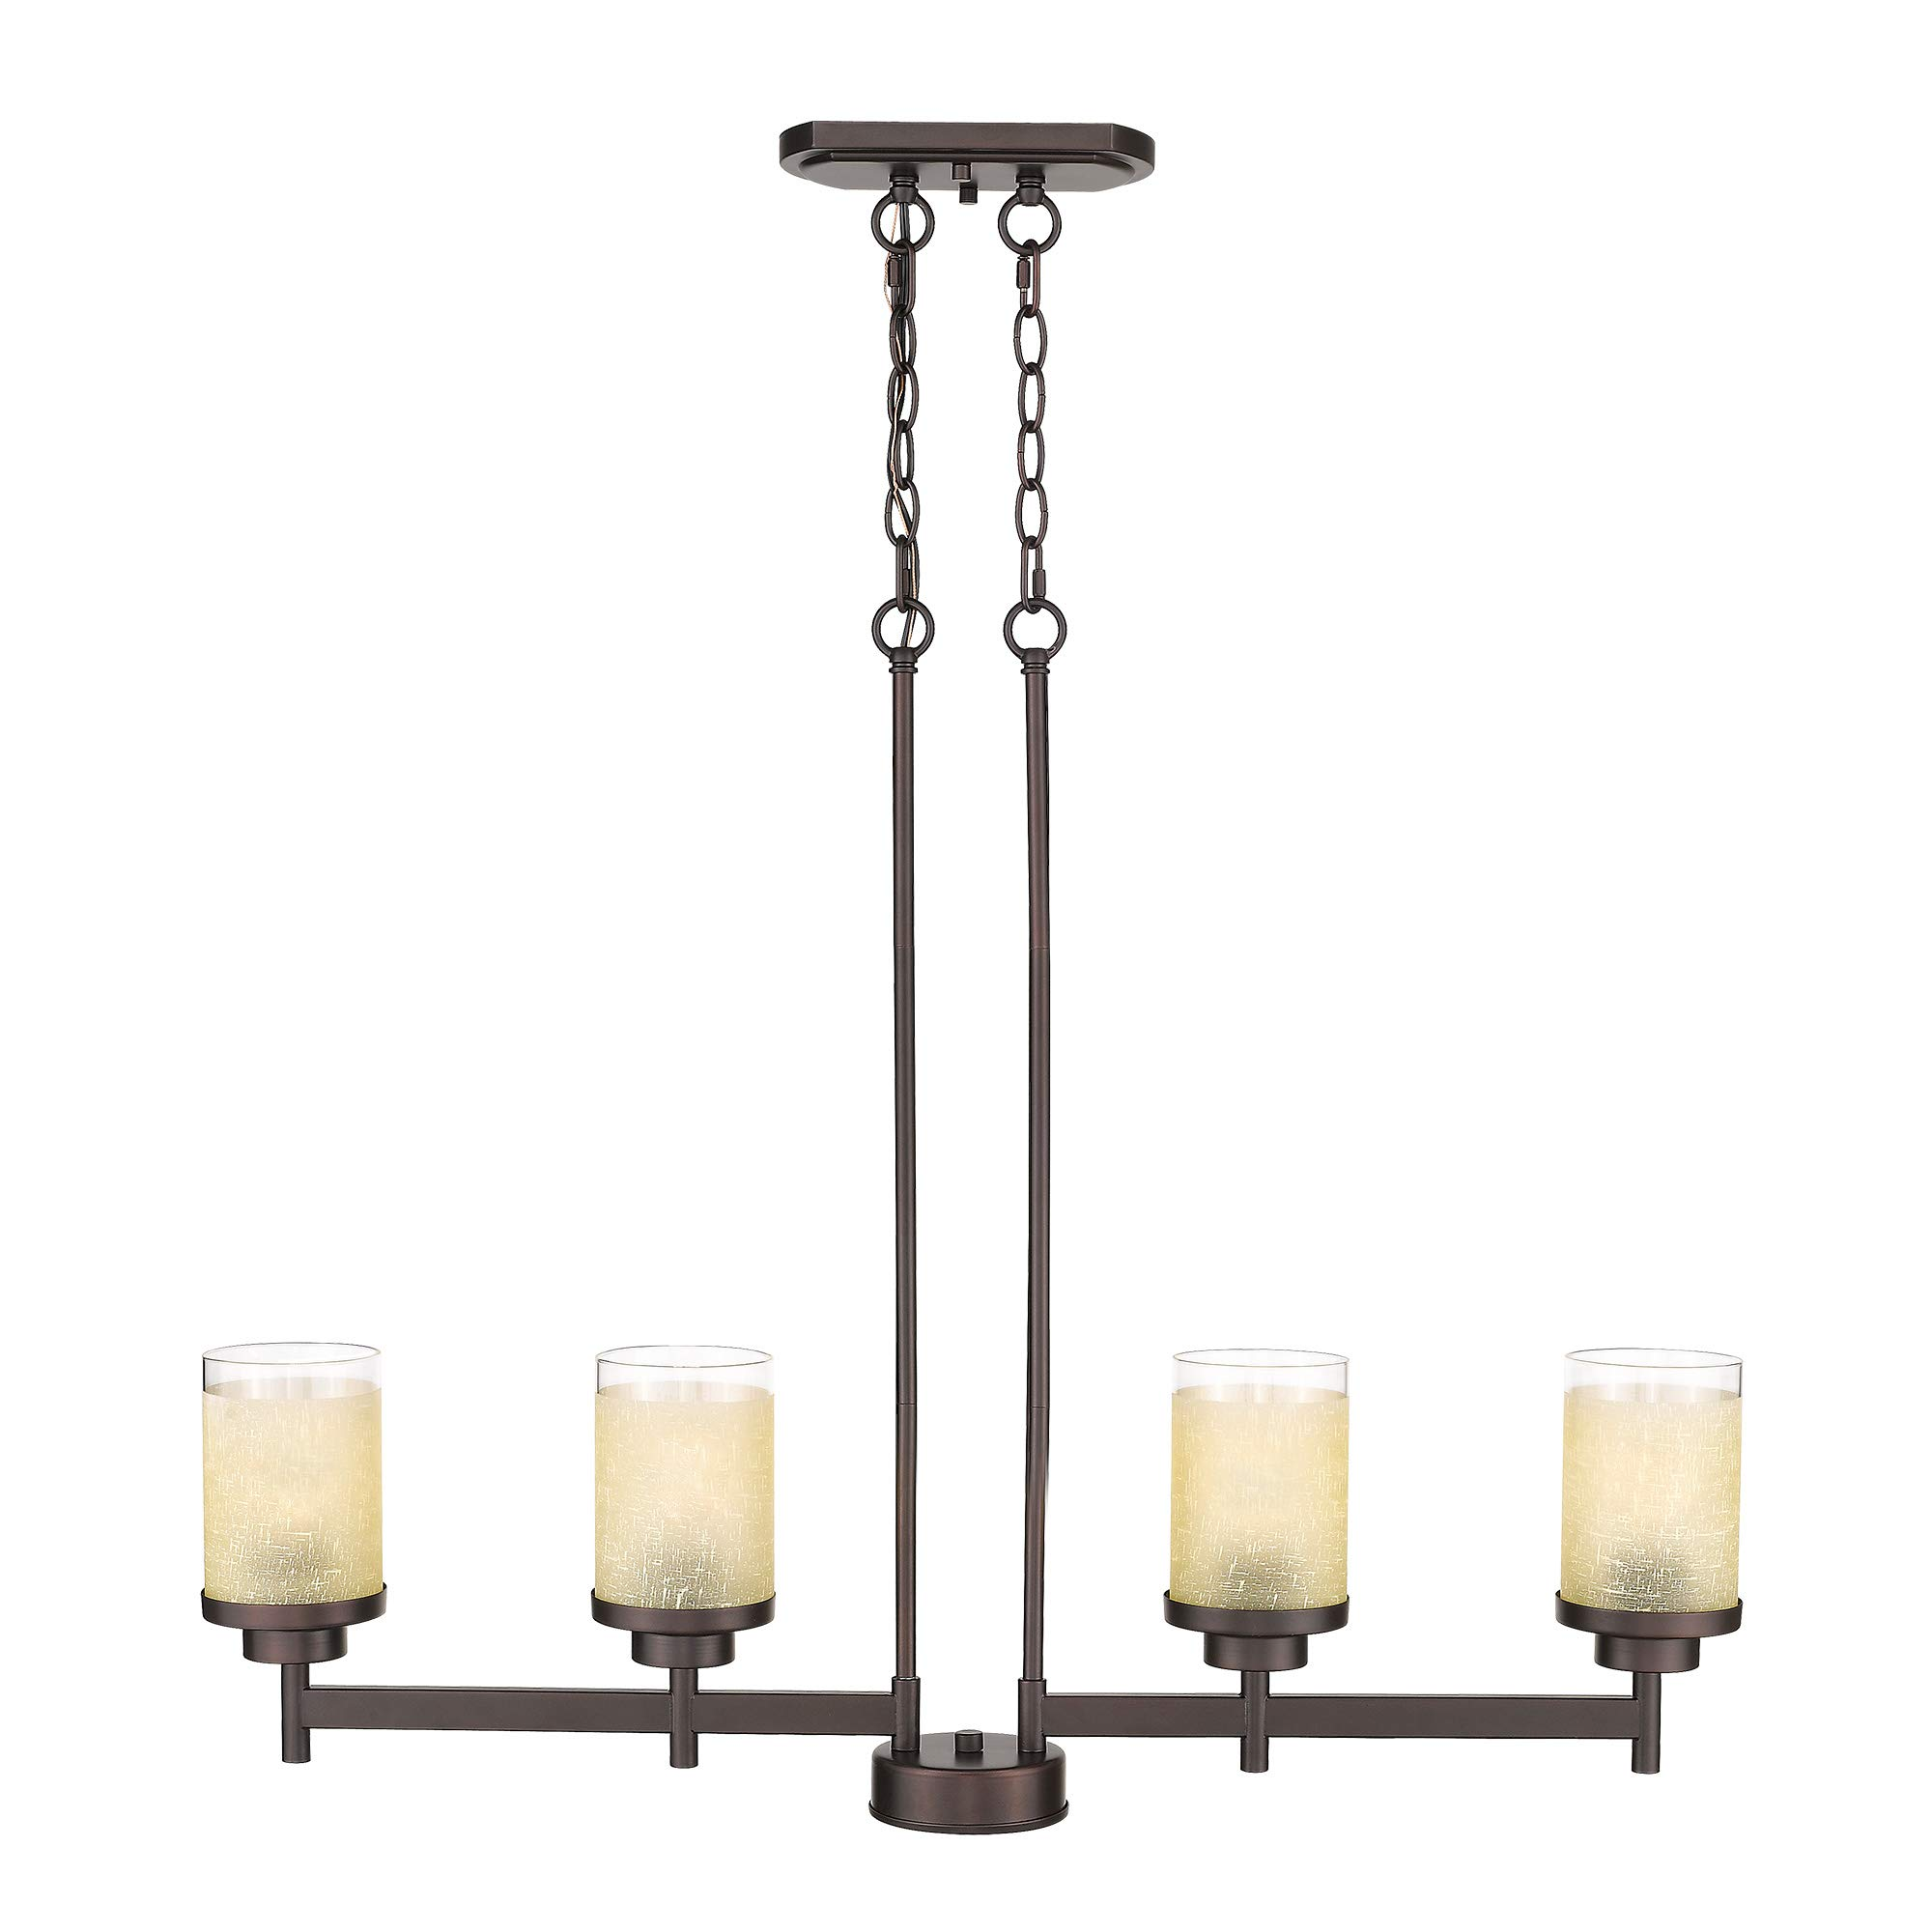 Jazava 4-Light Kitchen Island Lighting, Industrial Linear Pendant Light Fixture, Modern Farmhouse Chandelier, Oil Rubbed Bronze with Yellow Linen Frosted Glass Shade